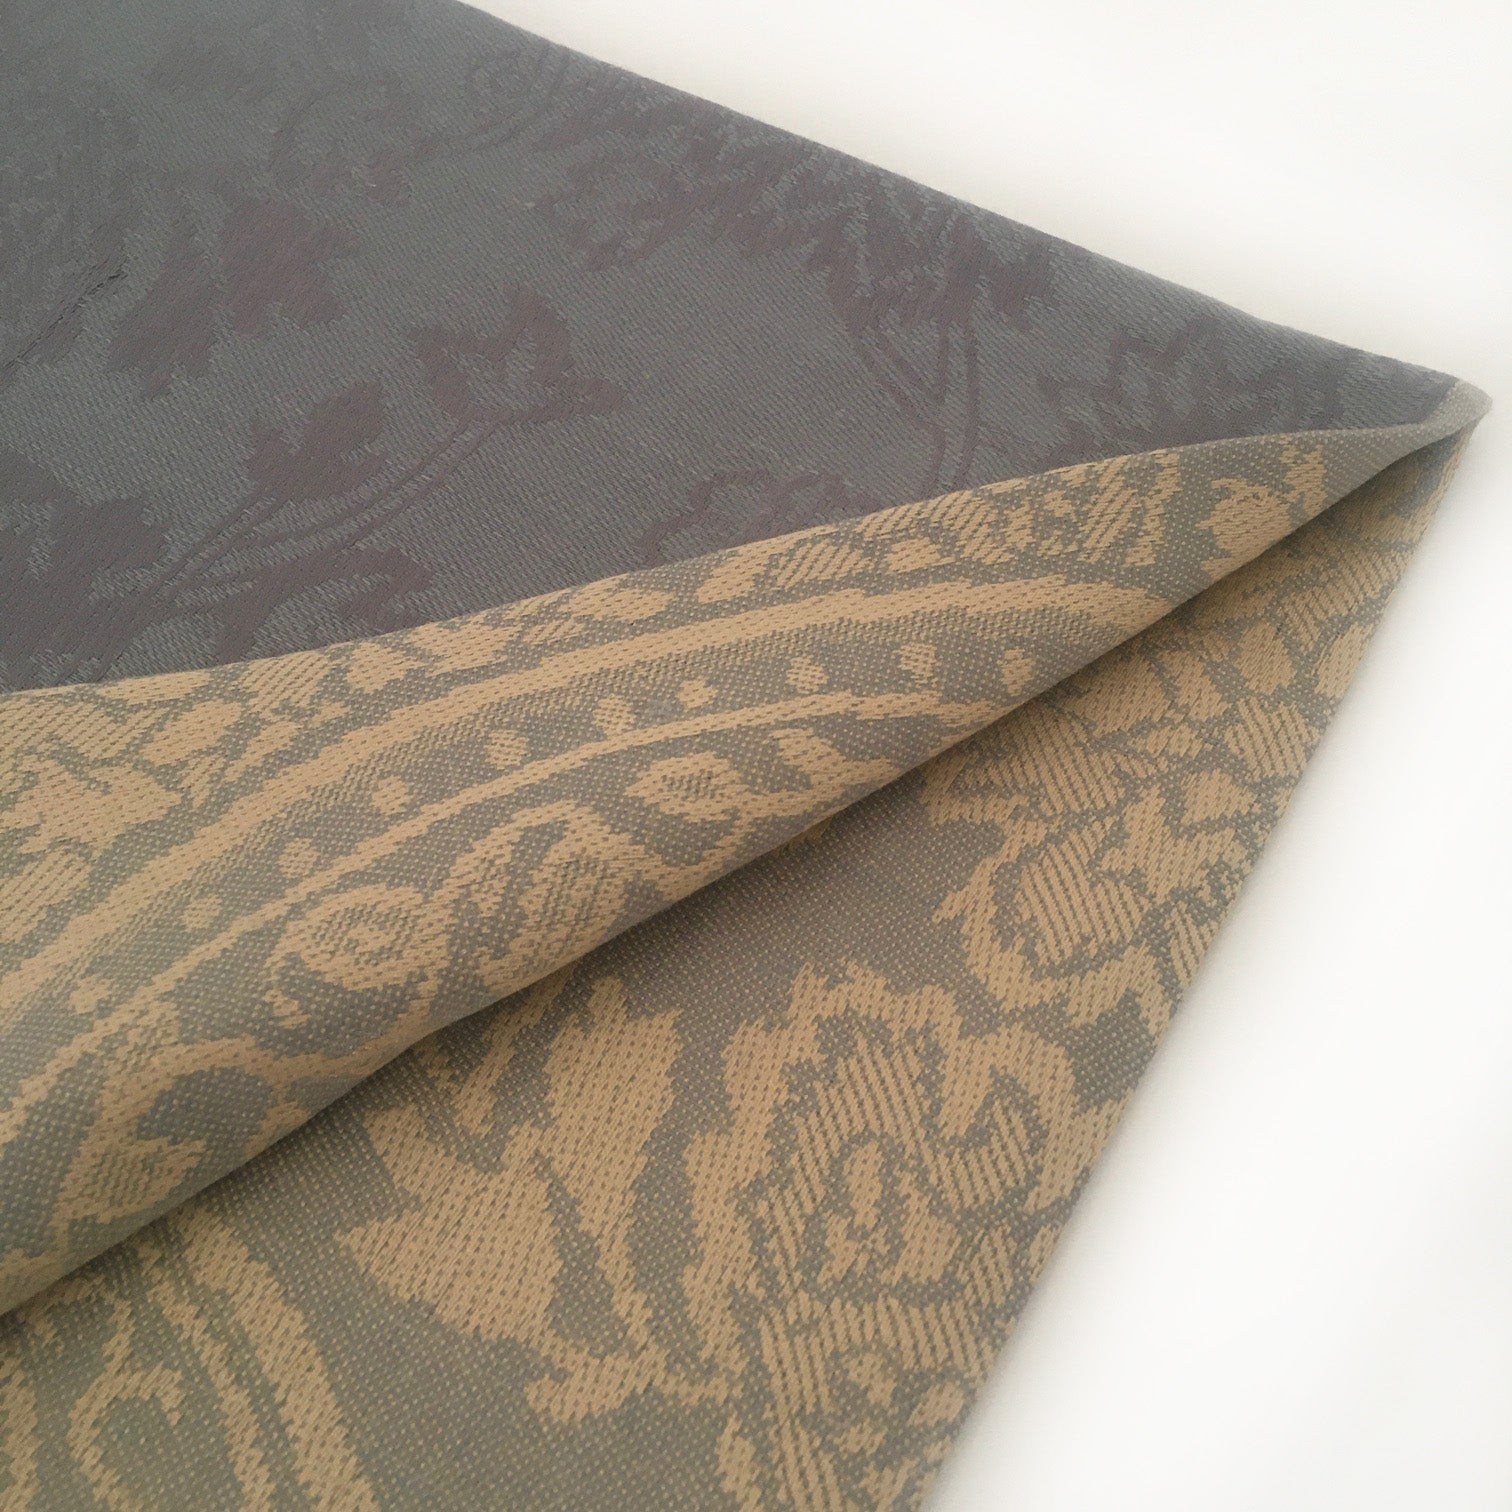 A-SHU CHARCOAL GREY PAISLEY FLORAL PRINT REVERSIBLE PASHMINA SHAWL SCARF - A-SHU.CO.UK